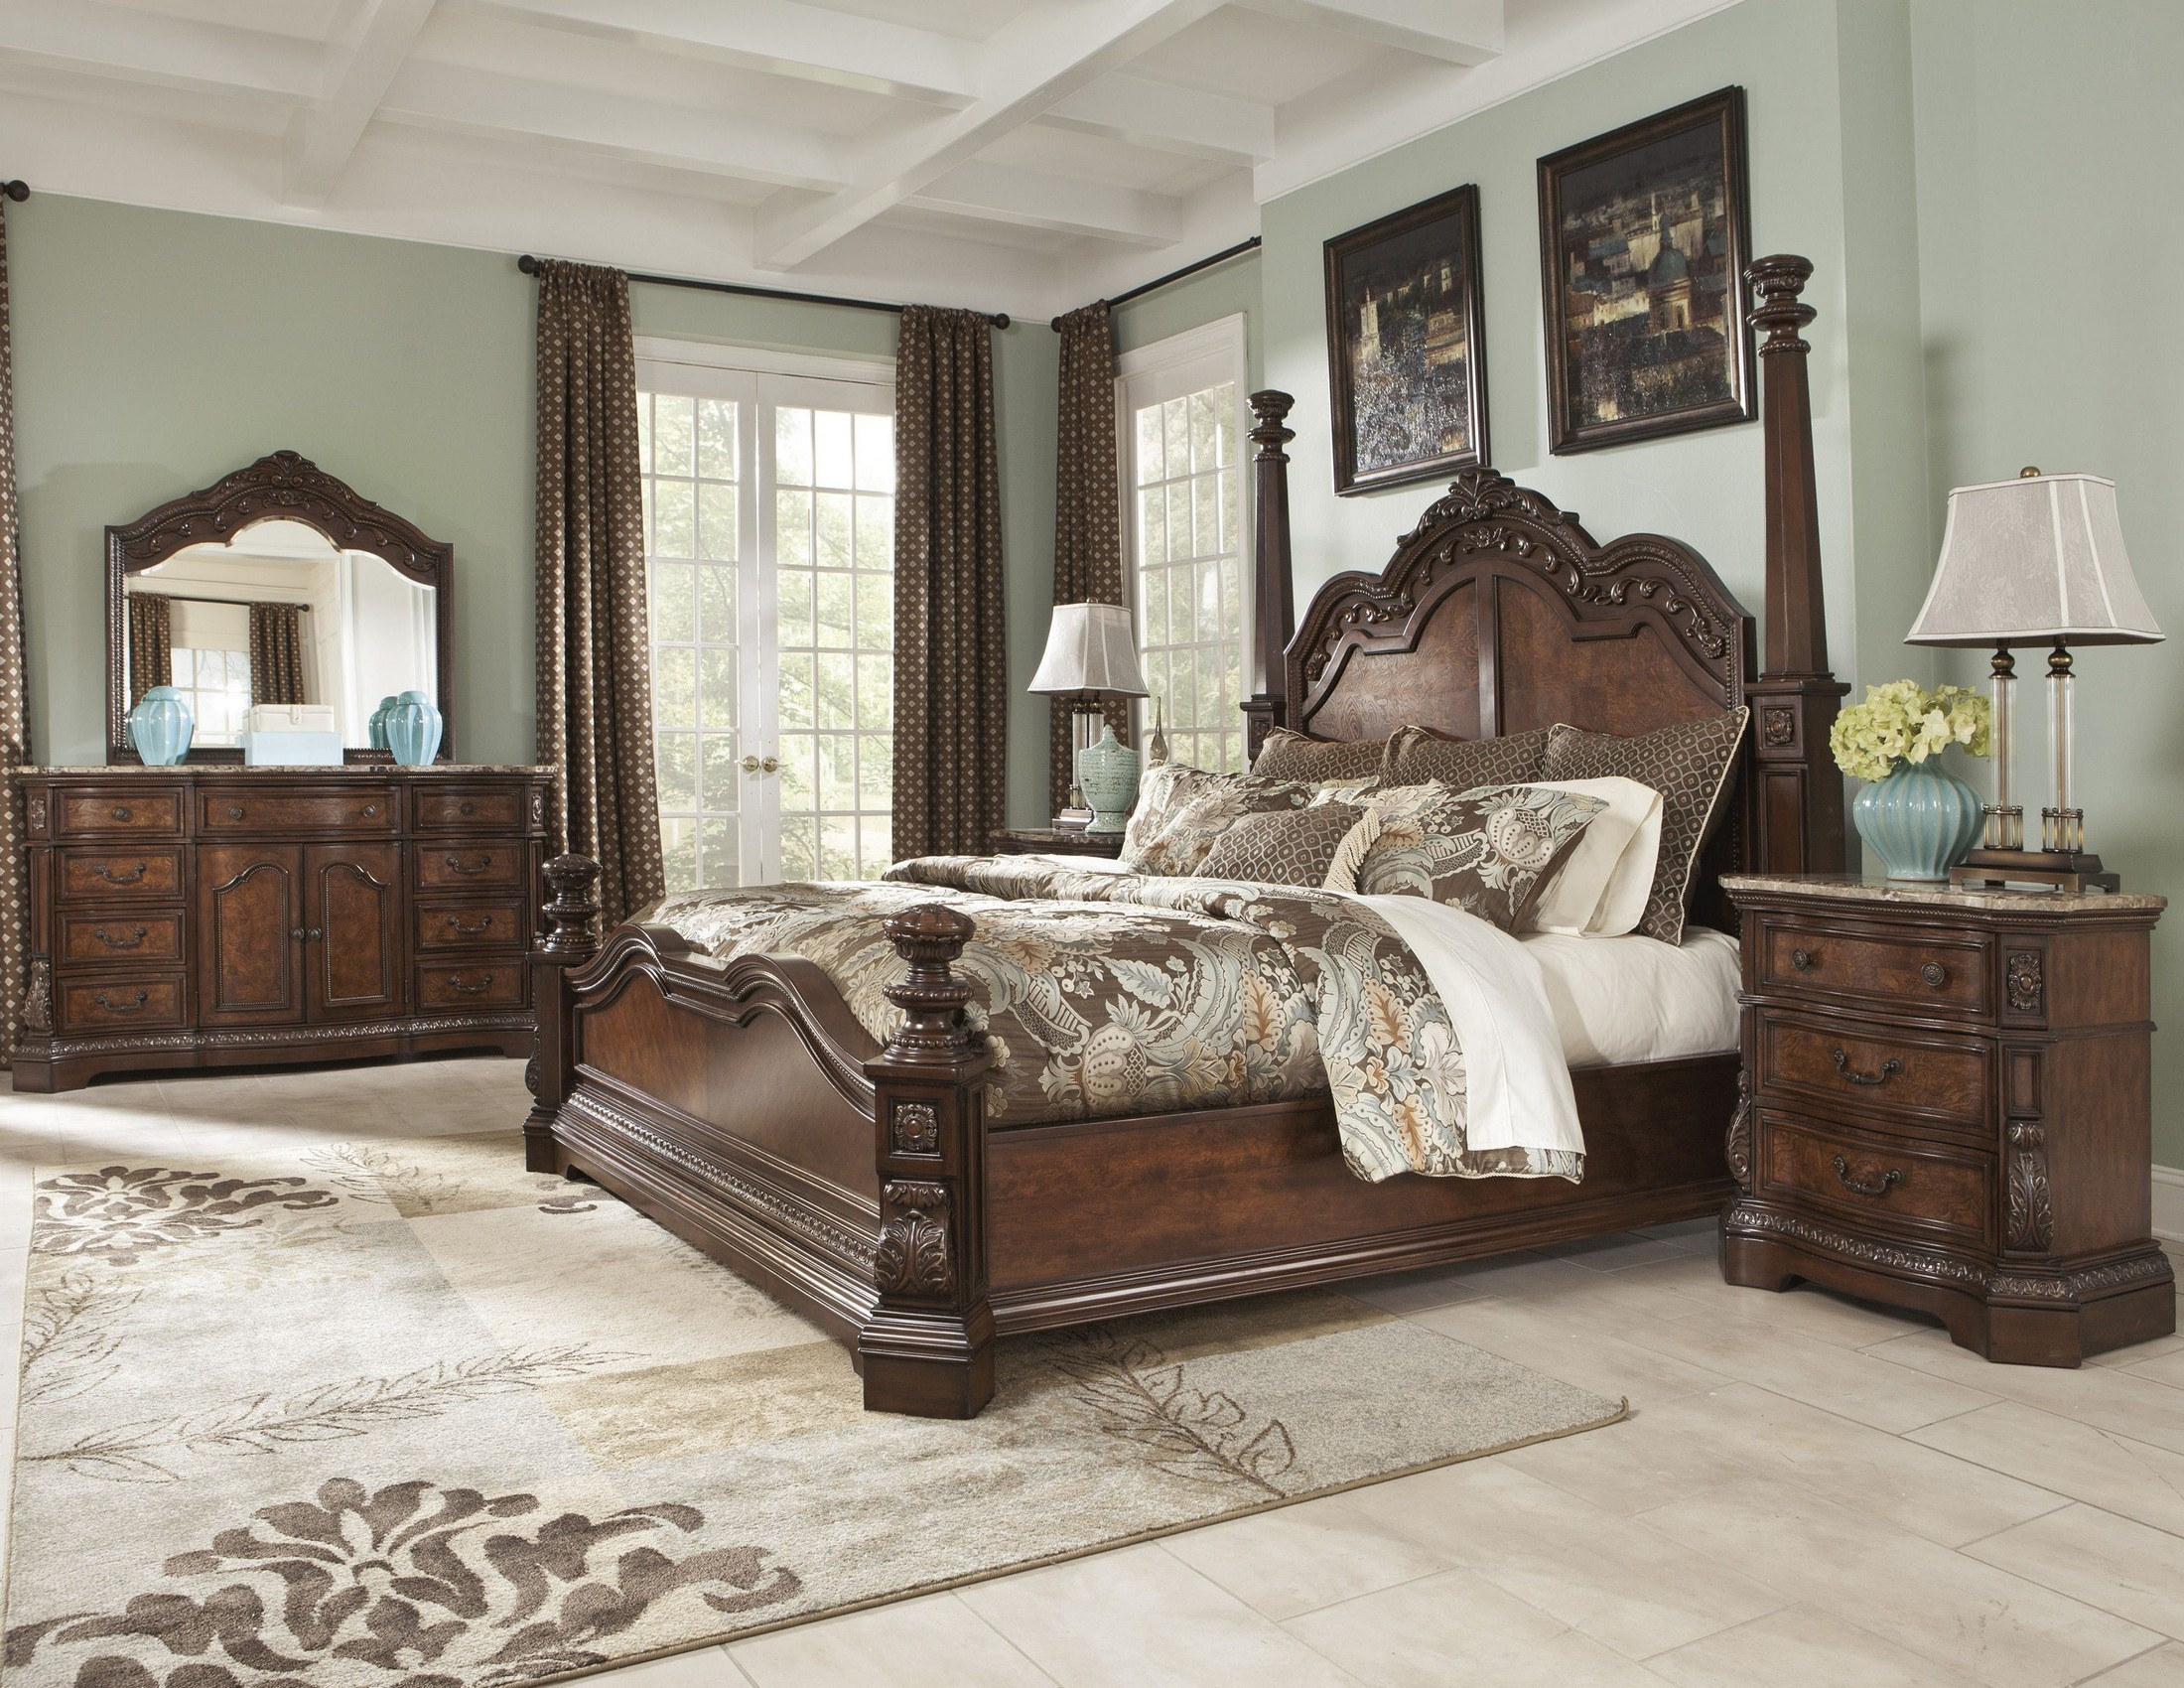 Ledelle poster bedroom set from ashley b705 51 71 98 - Ashley furniture bedroom packages ...